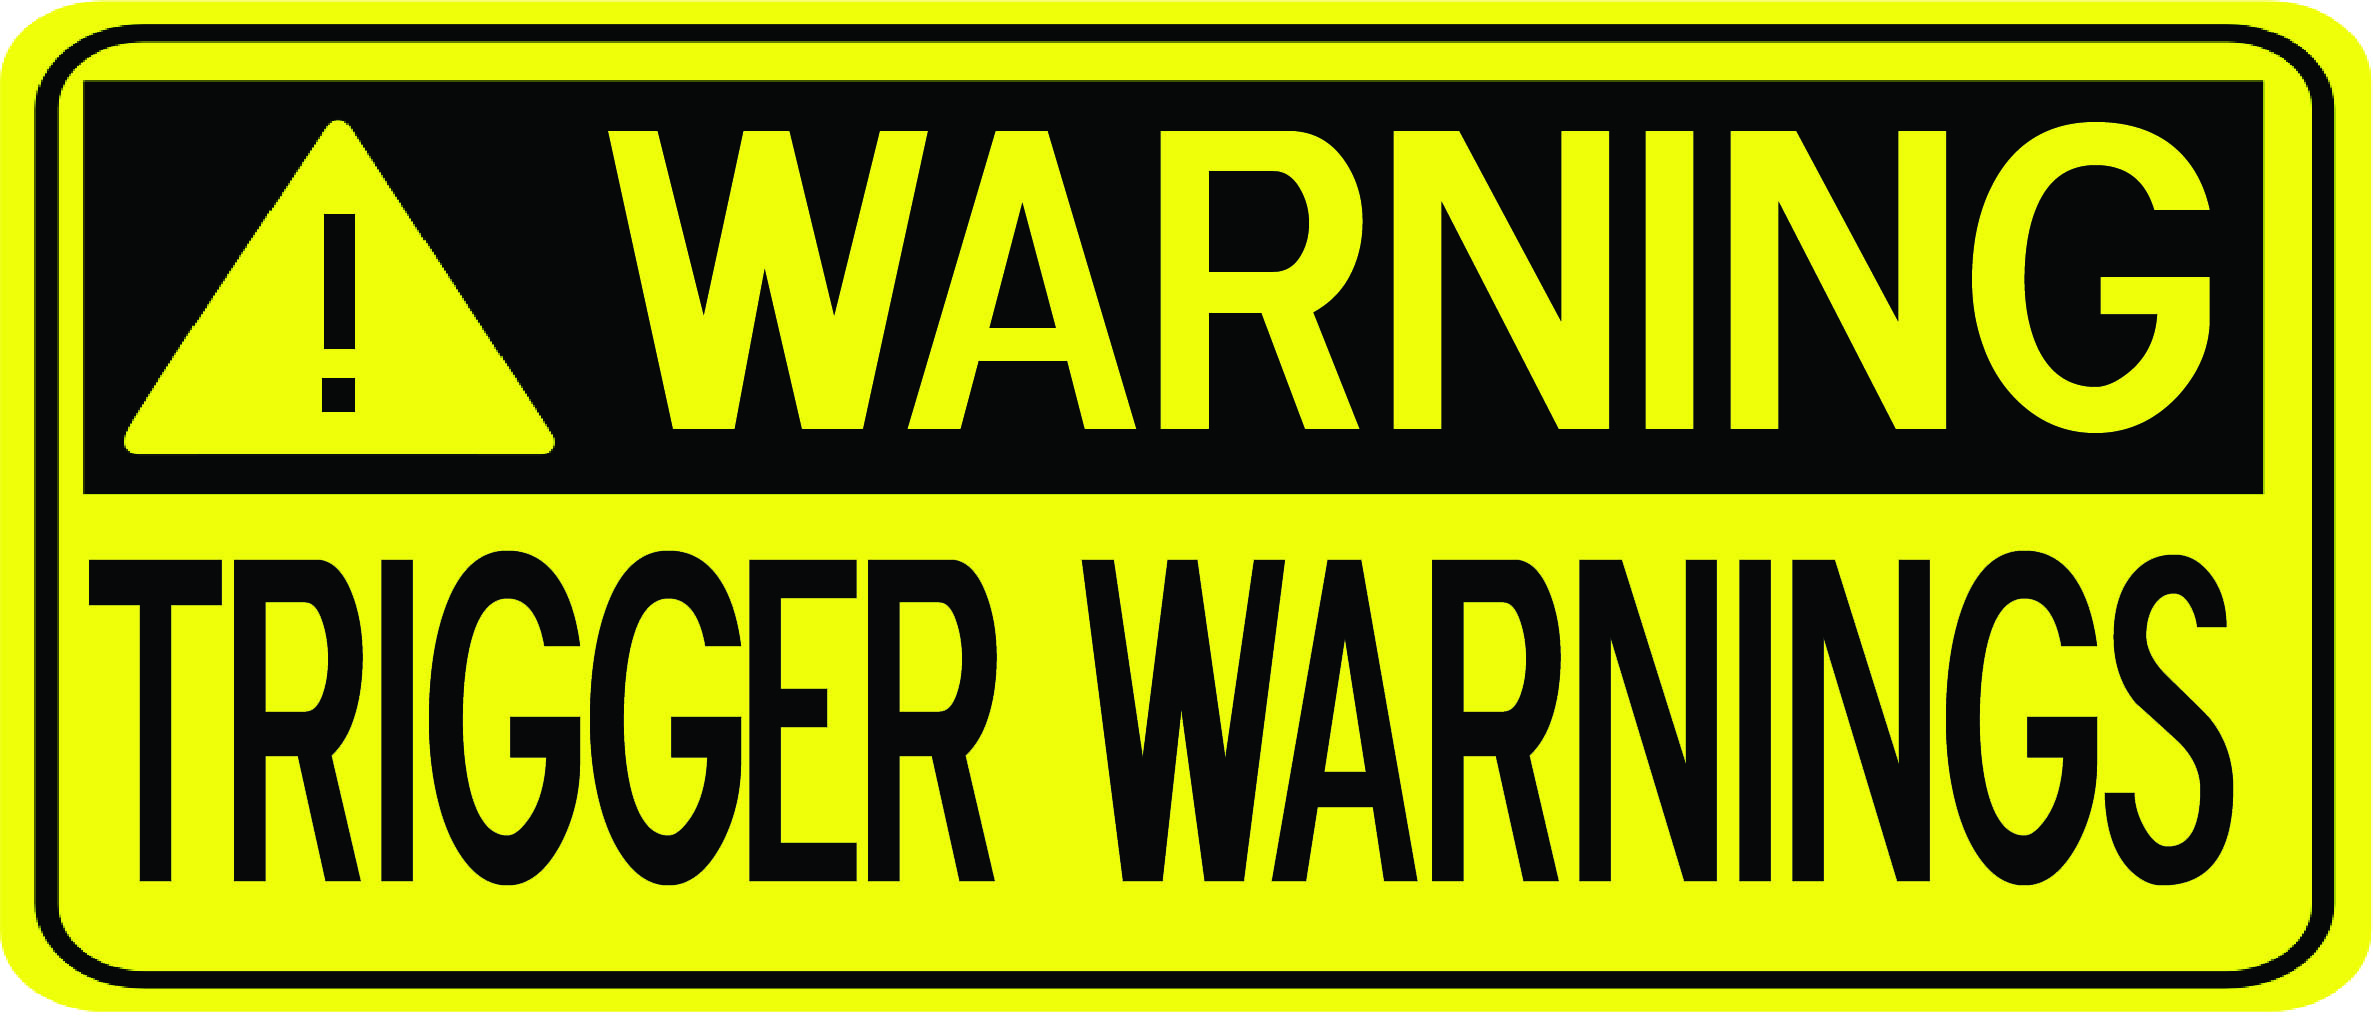 warning-trigger-warnings.jpg